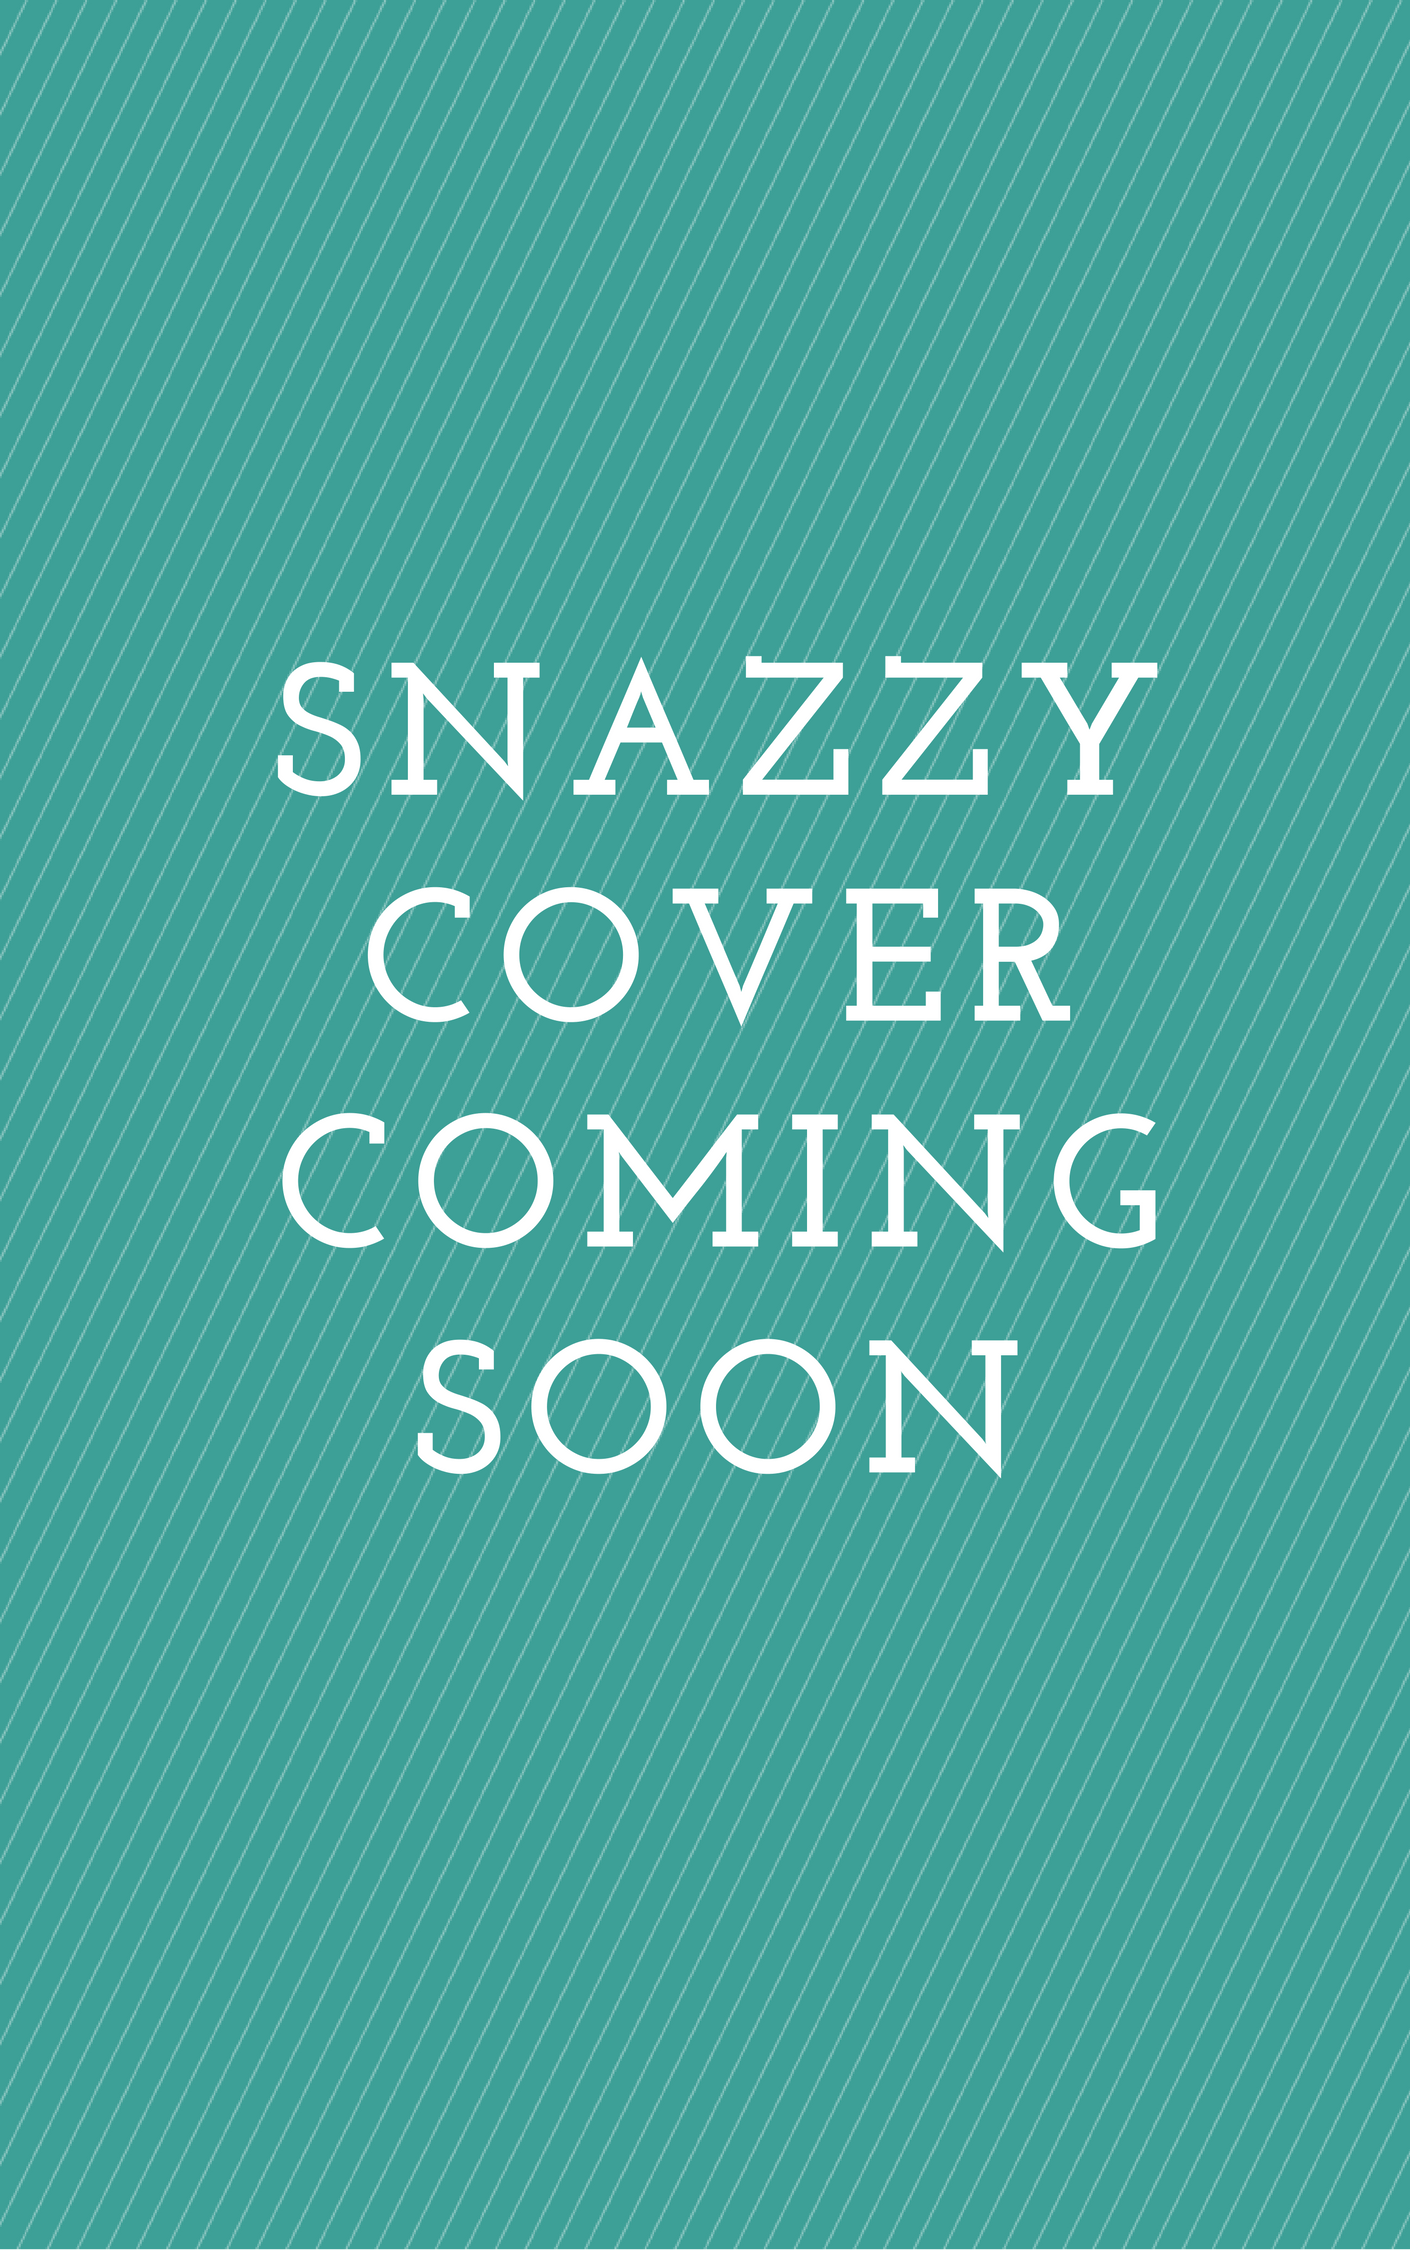 Copy of Snazzycovercoming soon